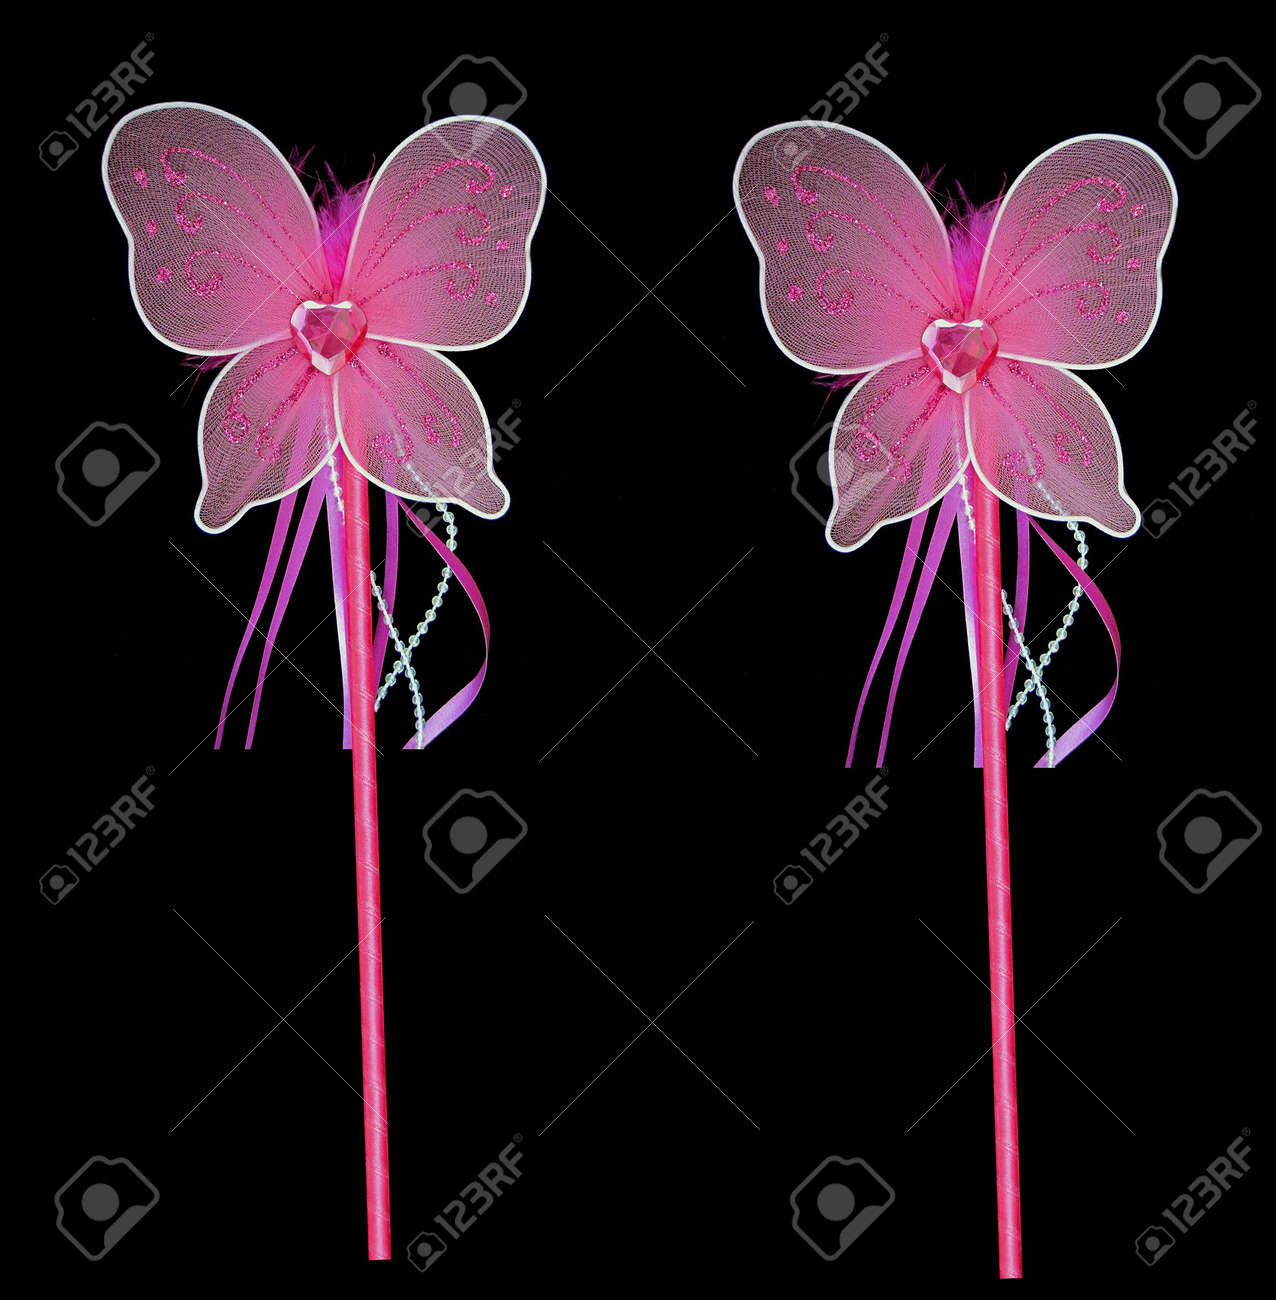 Pink fairy wands for getting all your wishes Stock Photo - 5700661